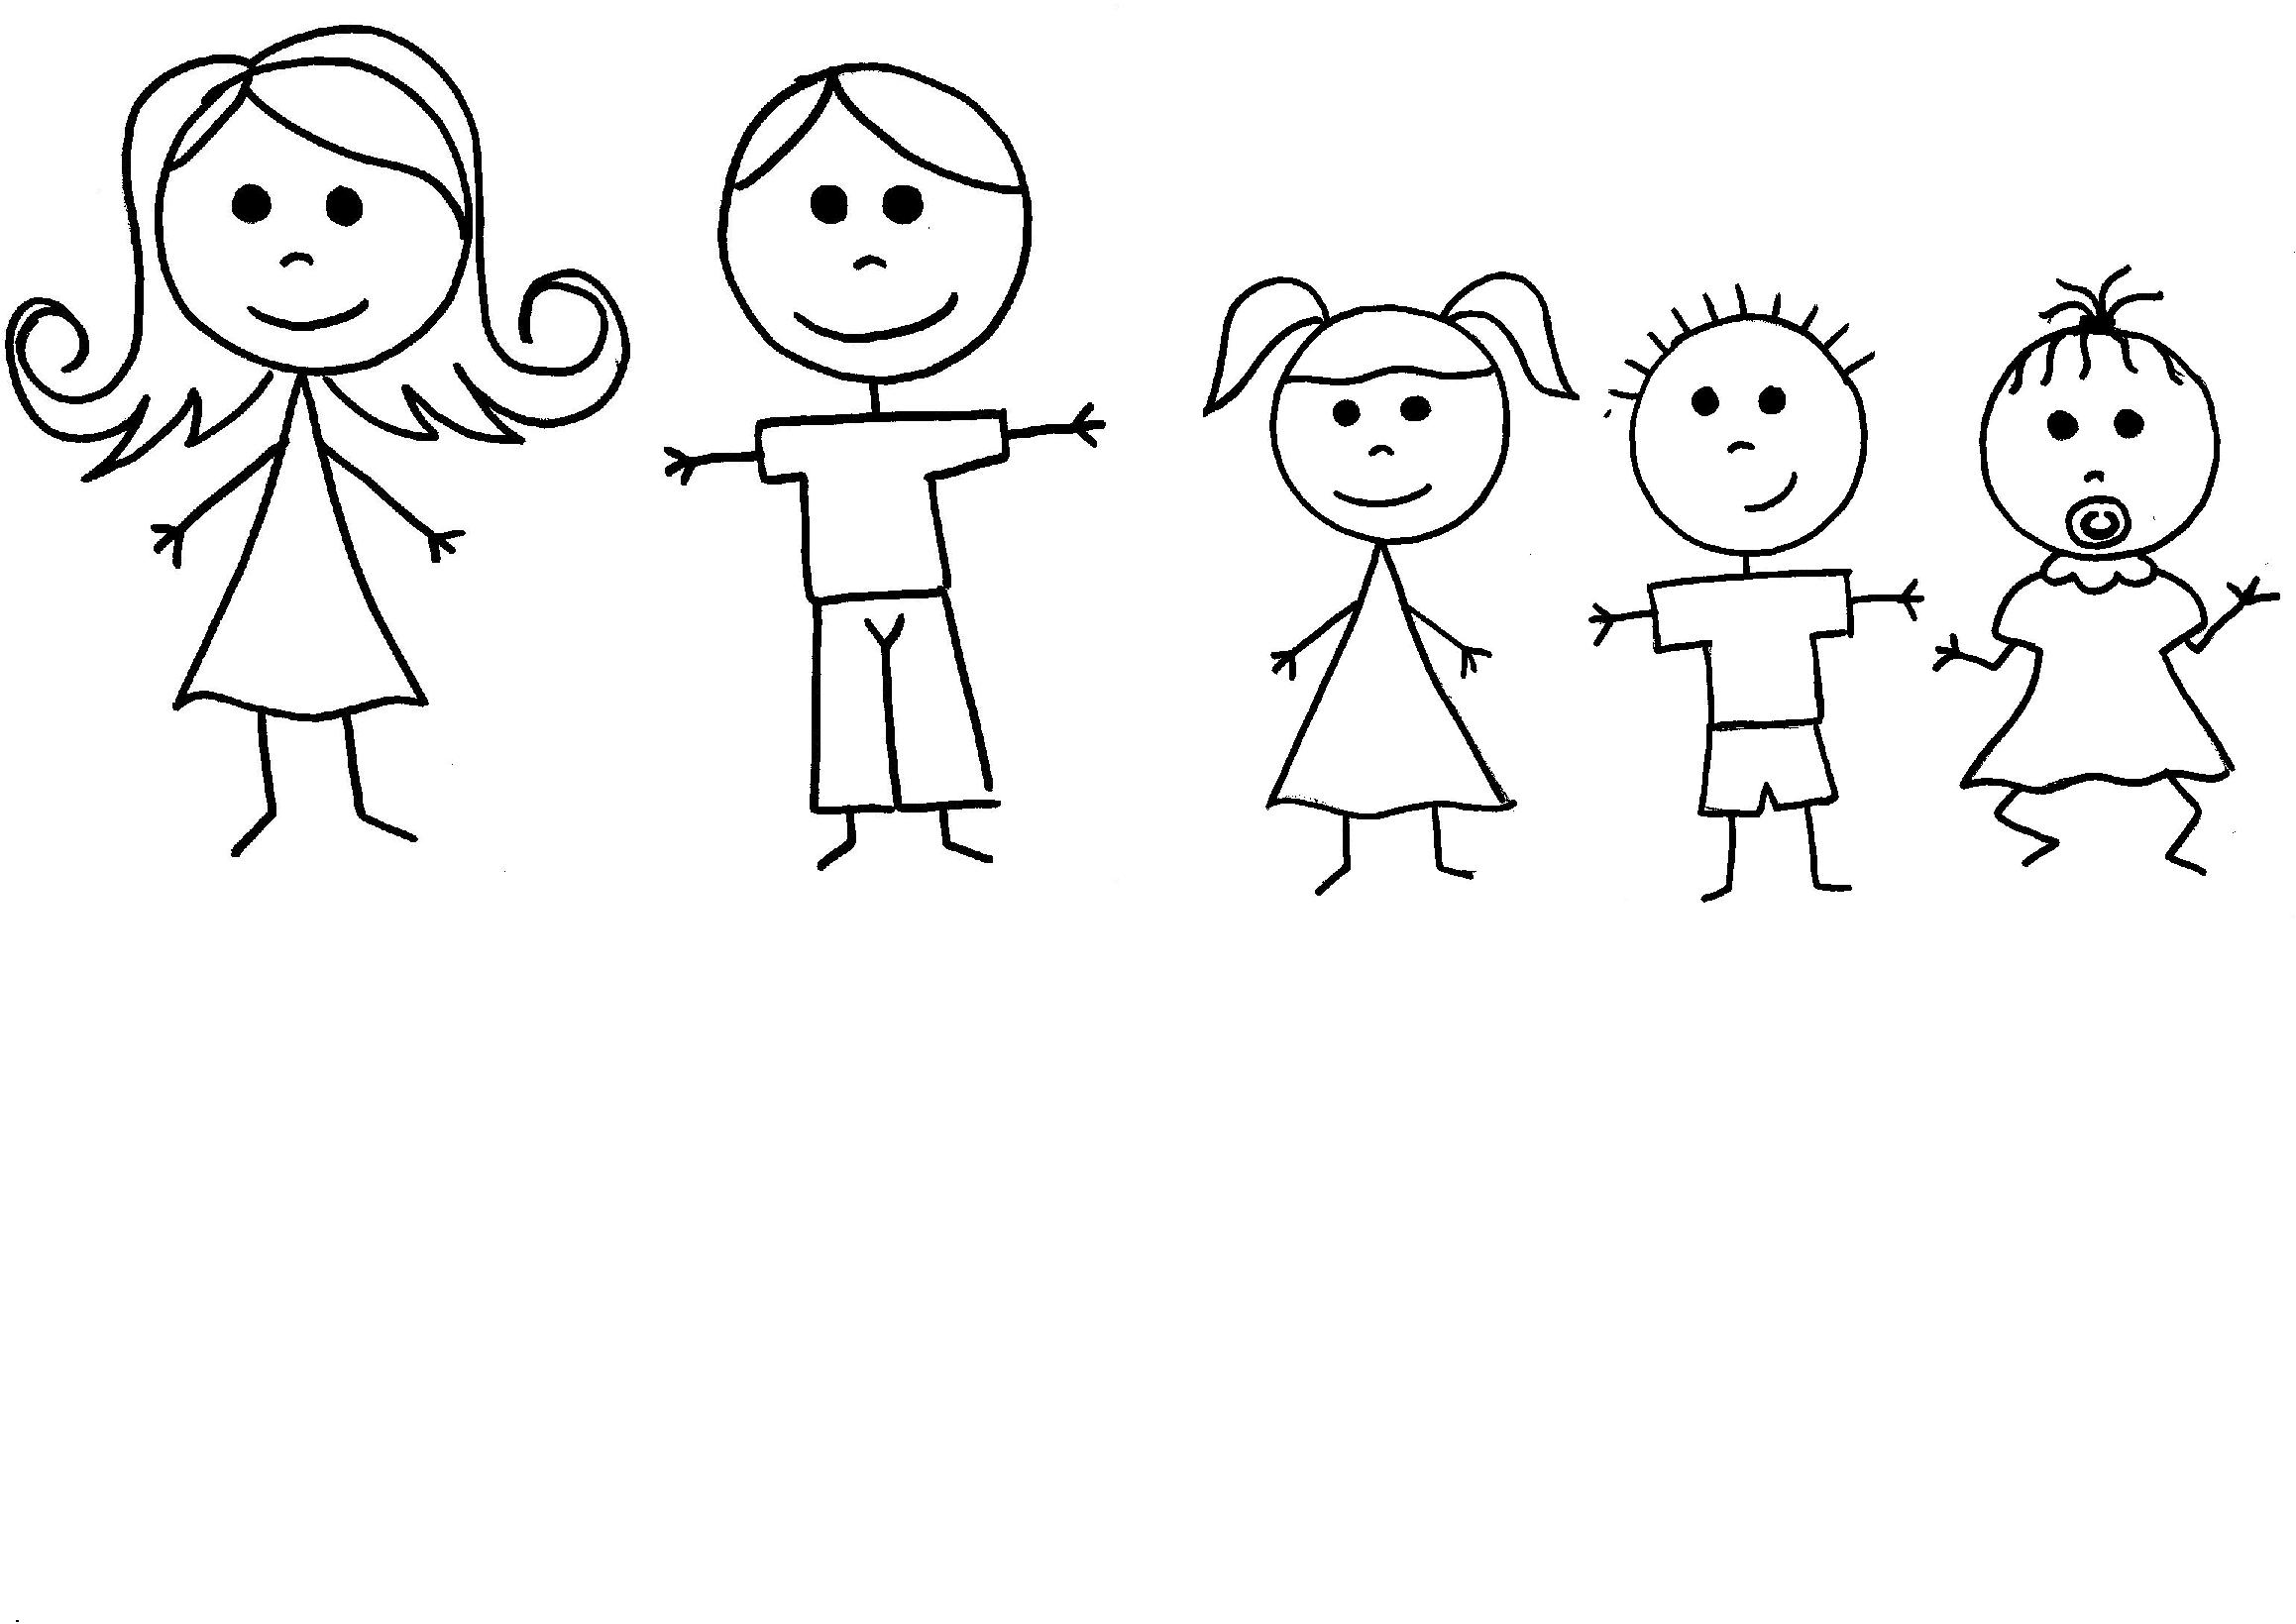 Family Clipart 5 People Stick People - G-Family Clipart 5 People Stick People - Gallery-4